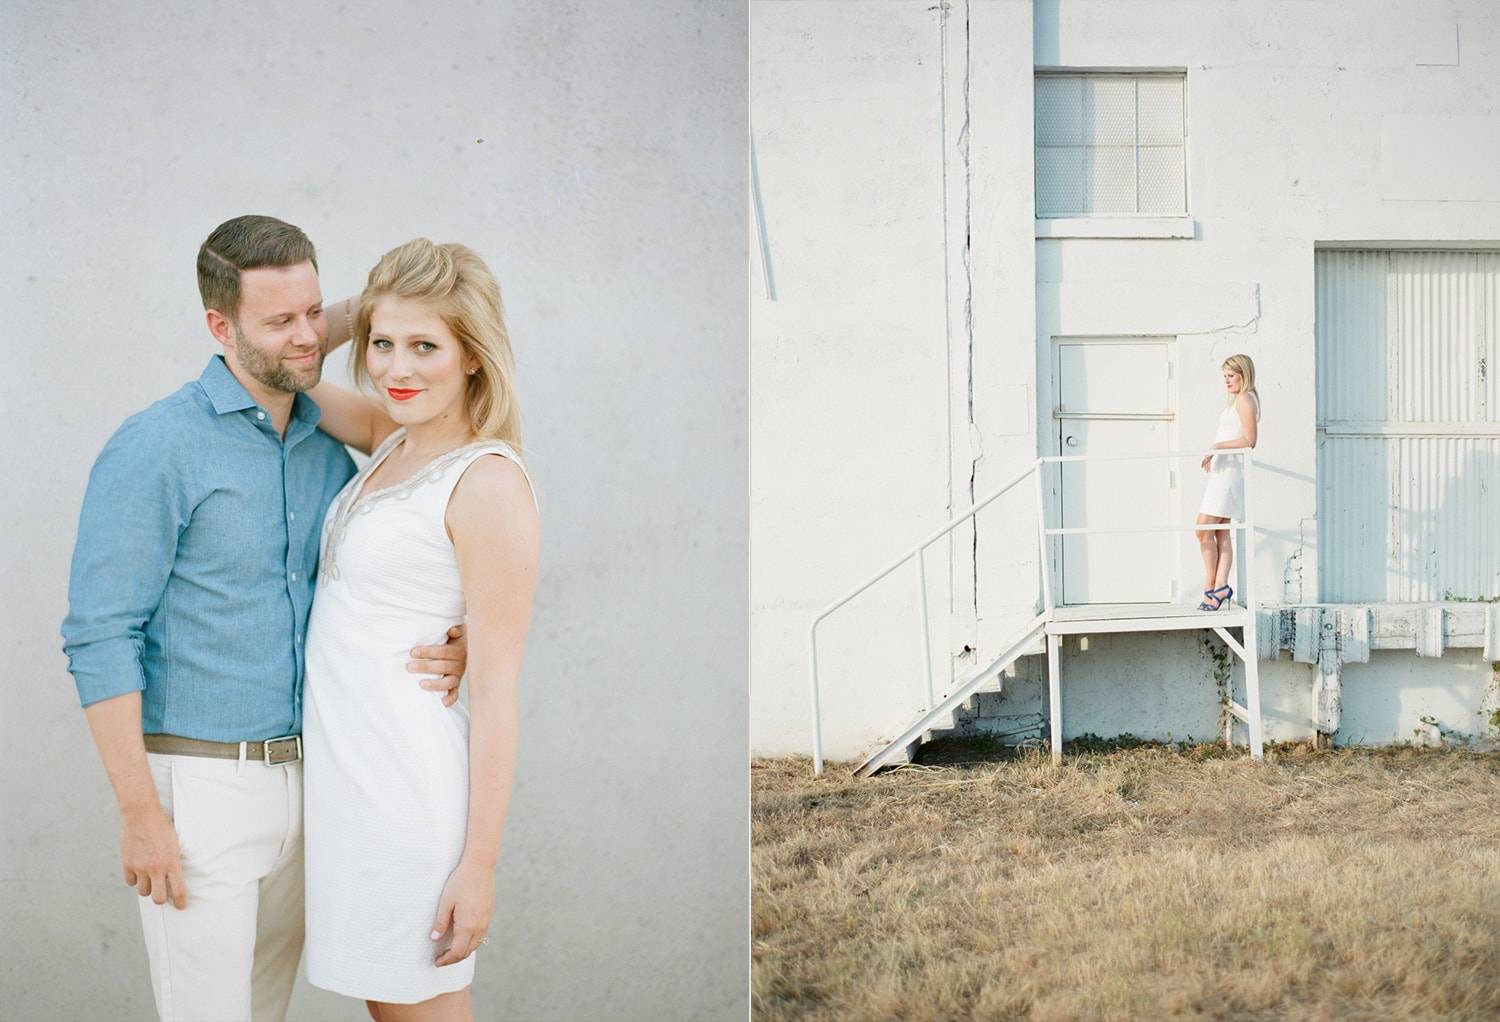 DEEP_ELLUM_TX_FILM_ENGAGEMENT_SHOOT__MATTHEW_MOORE_PHOTOGRAPHY_PAN_003.jpg